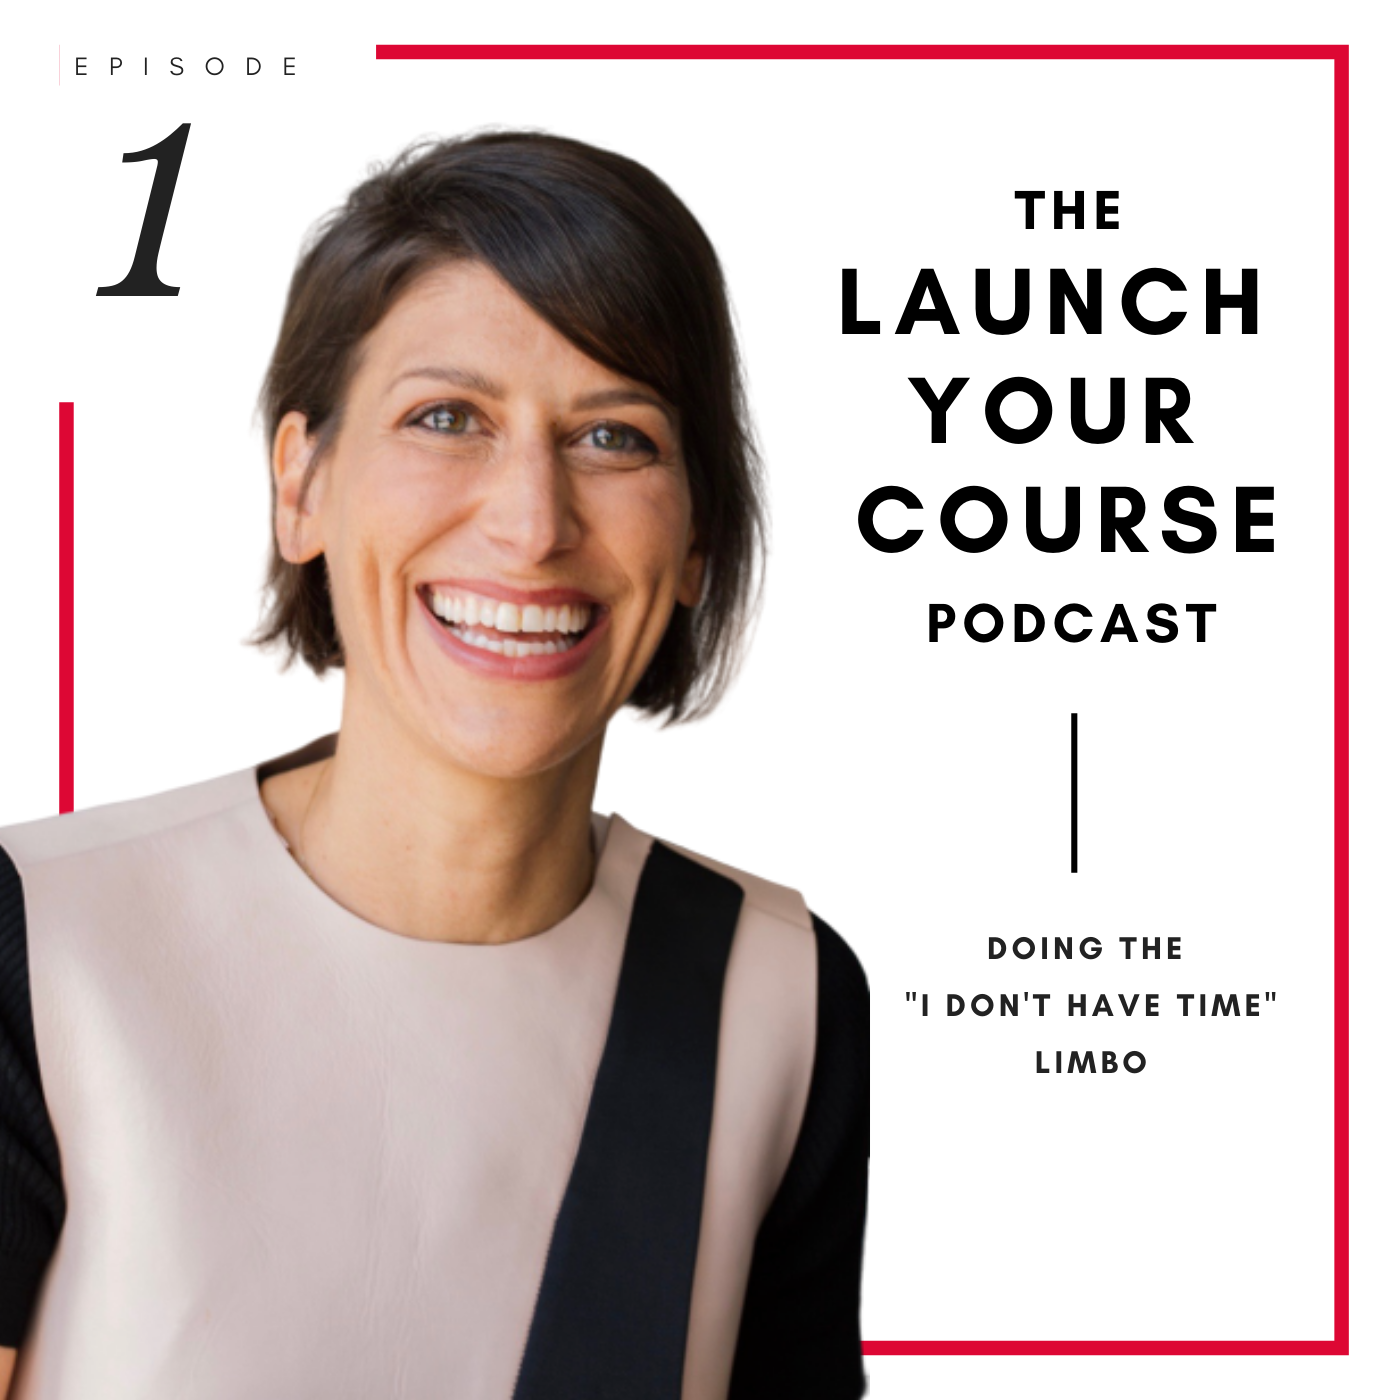 Launch your course podcast